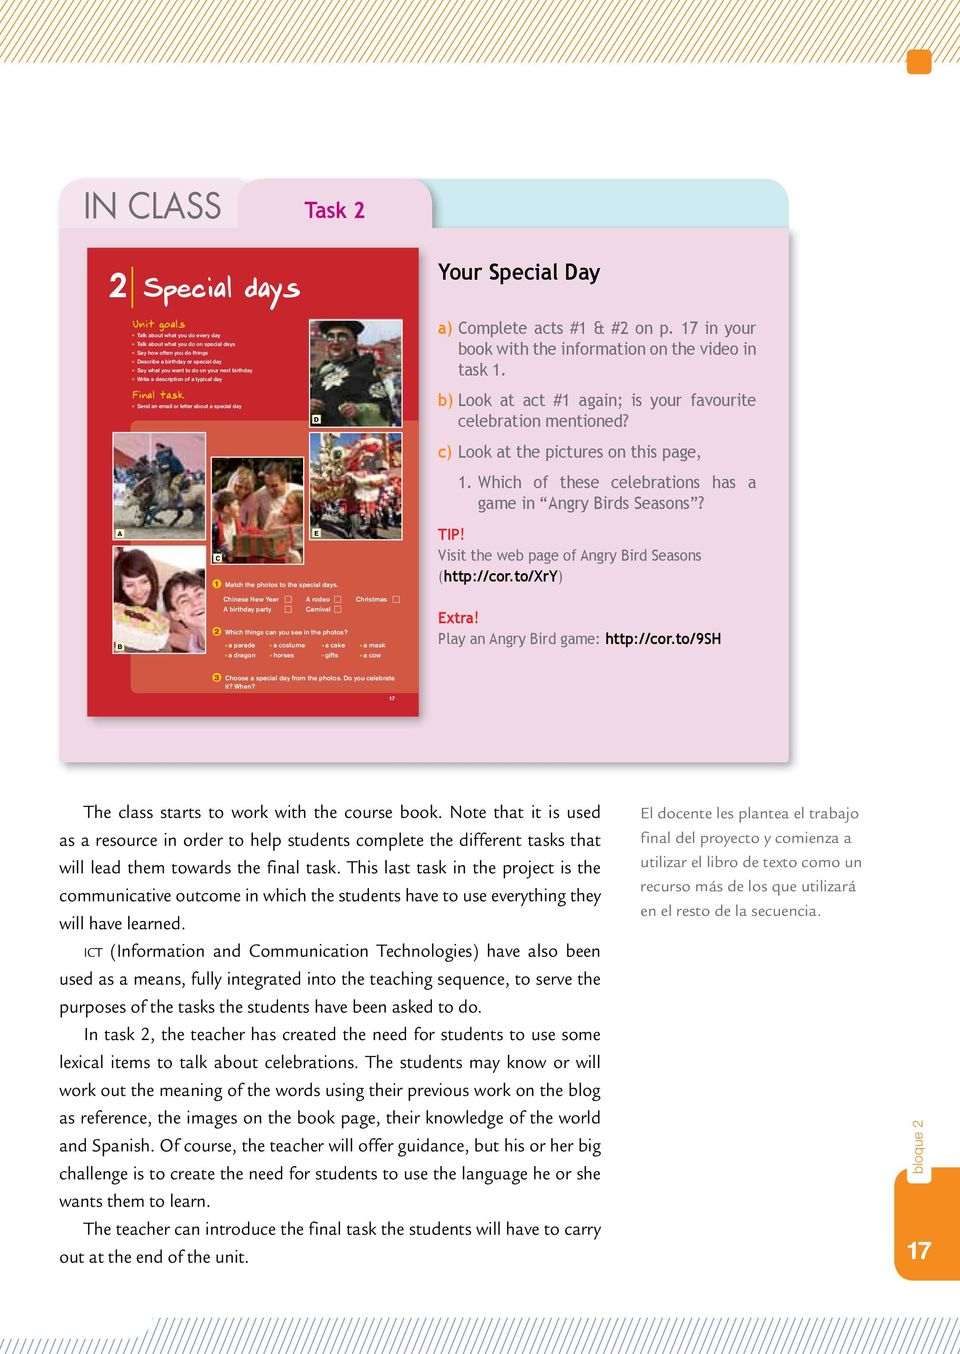 Your Special Day a) Complete acts #1 & #2 on p. 17 in your book with the information on the video in task 1. b) Look at act #1 again; is your favourite celebration mentioned?